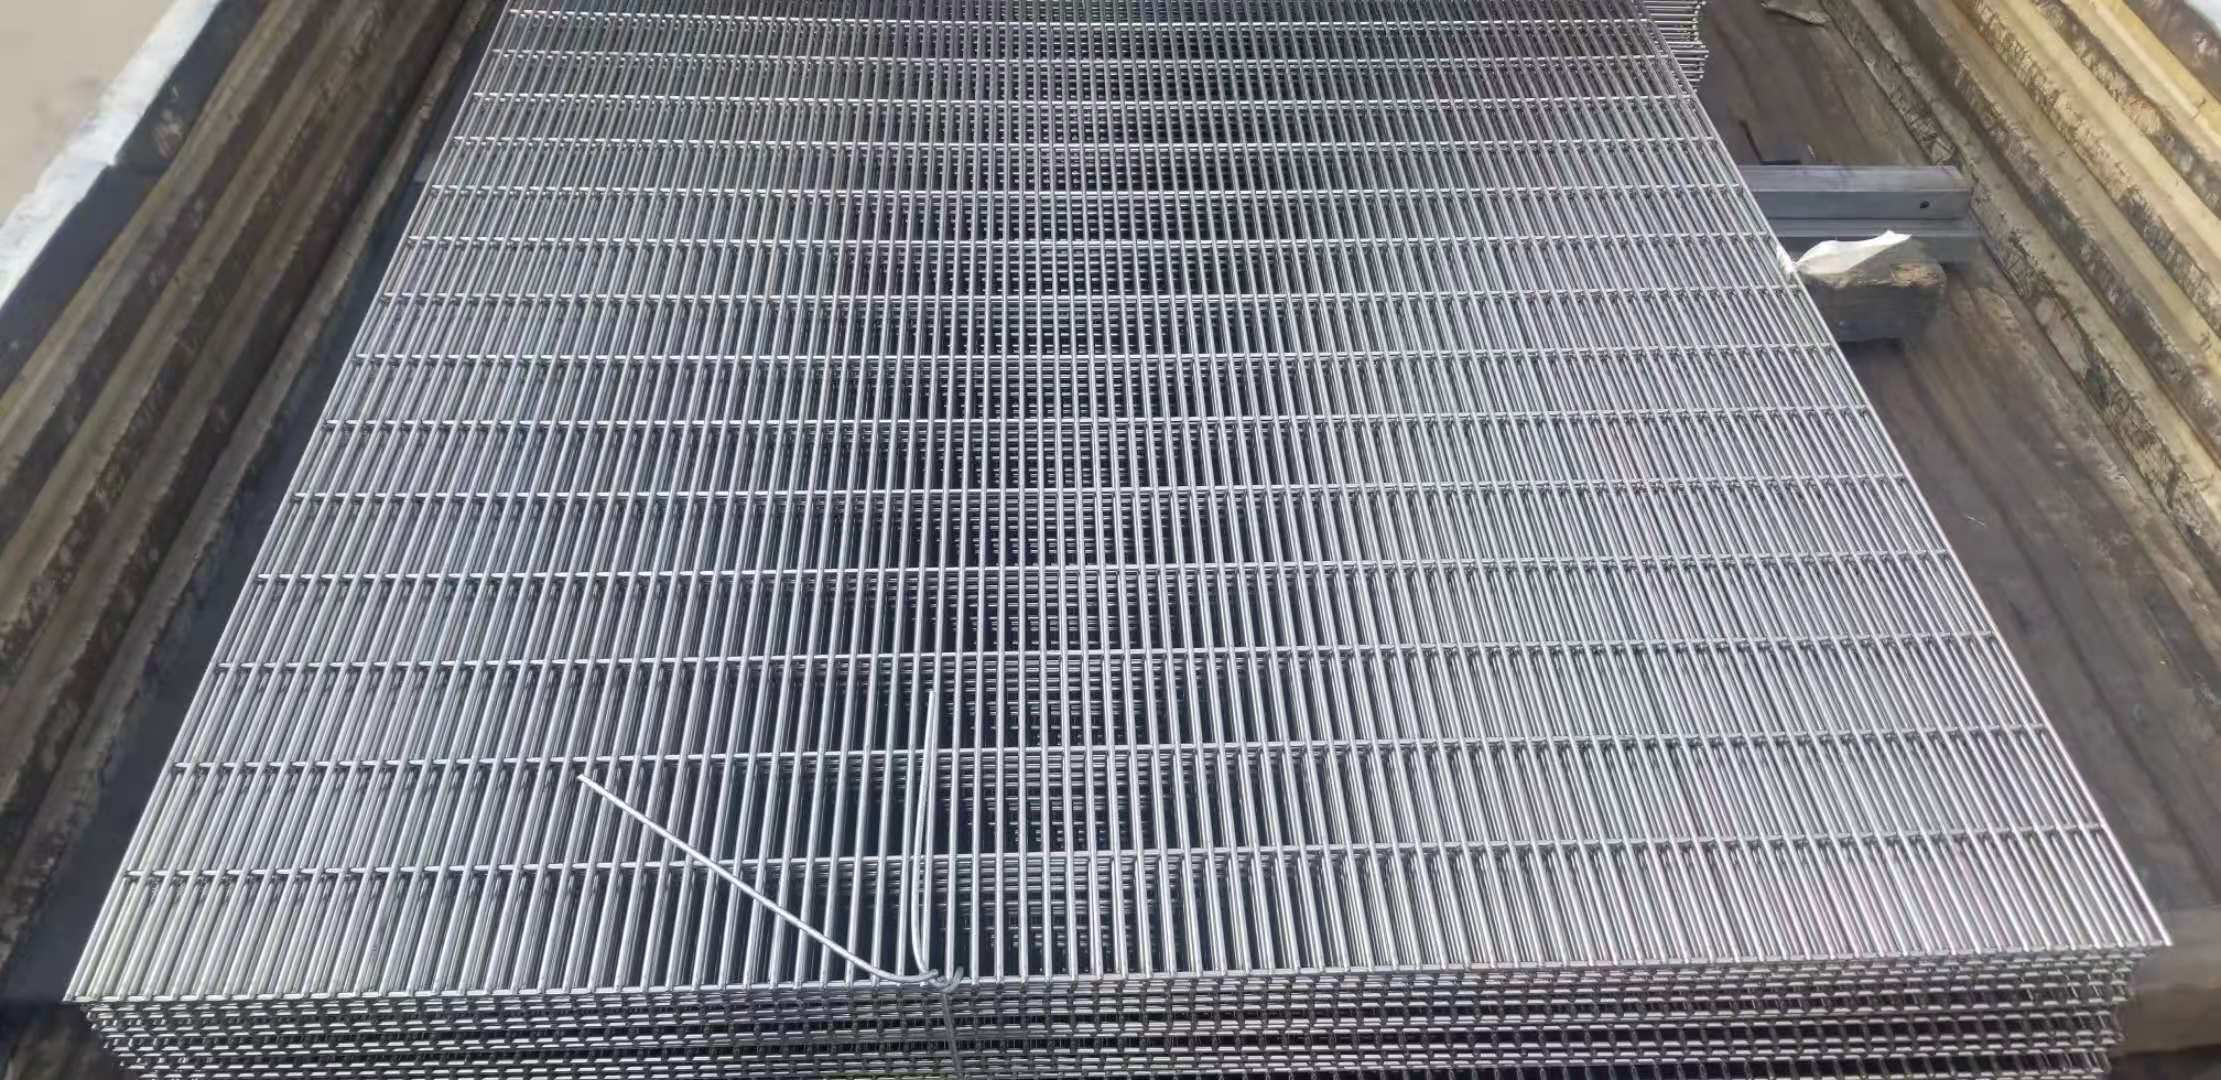 Stainless steel-high security fence